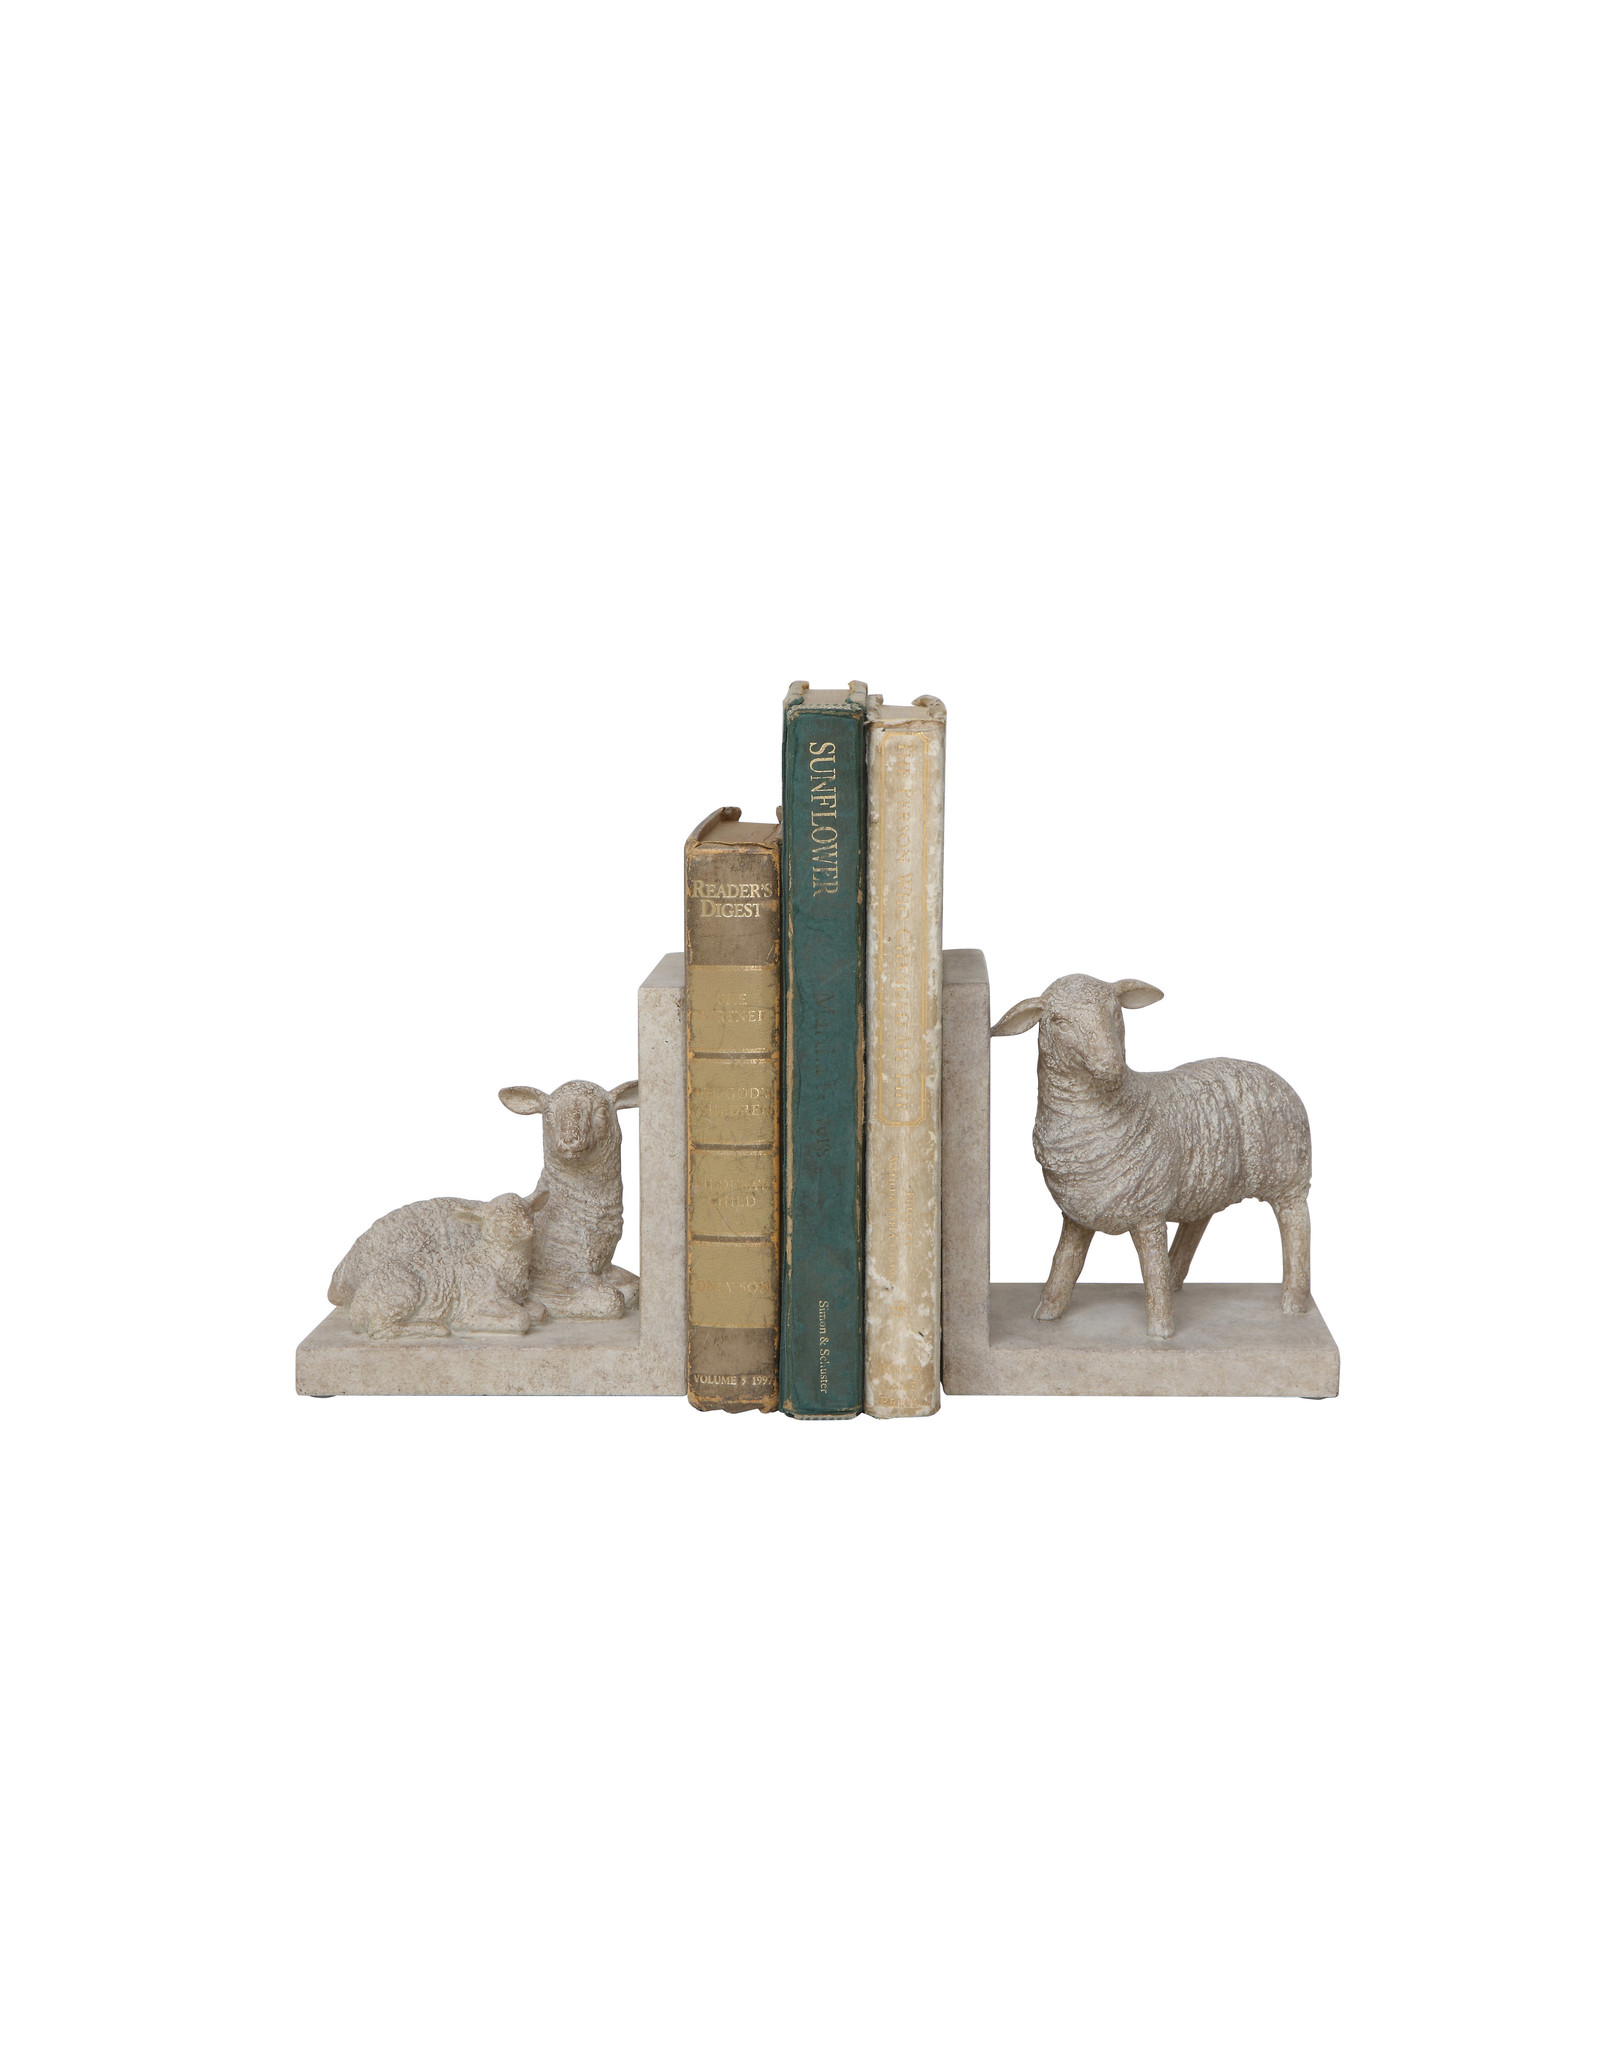 Resin Sheep Shaped Bookends (Set of 2 Pieces)